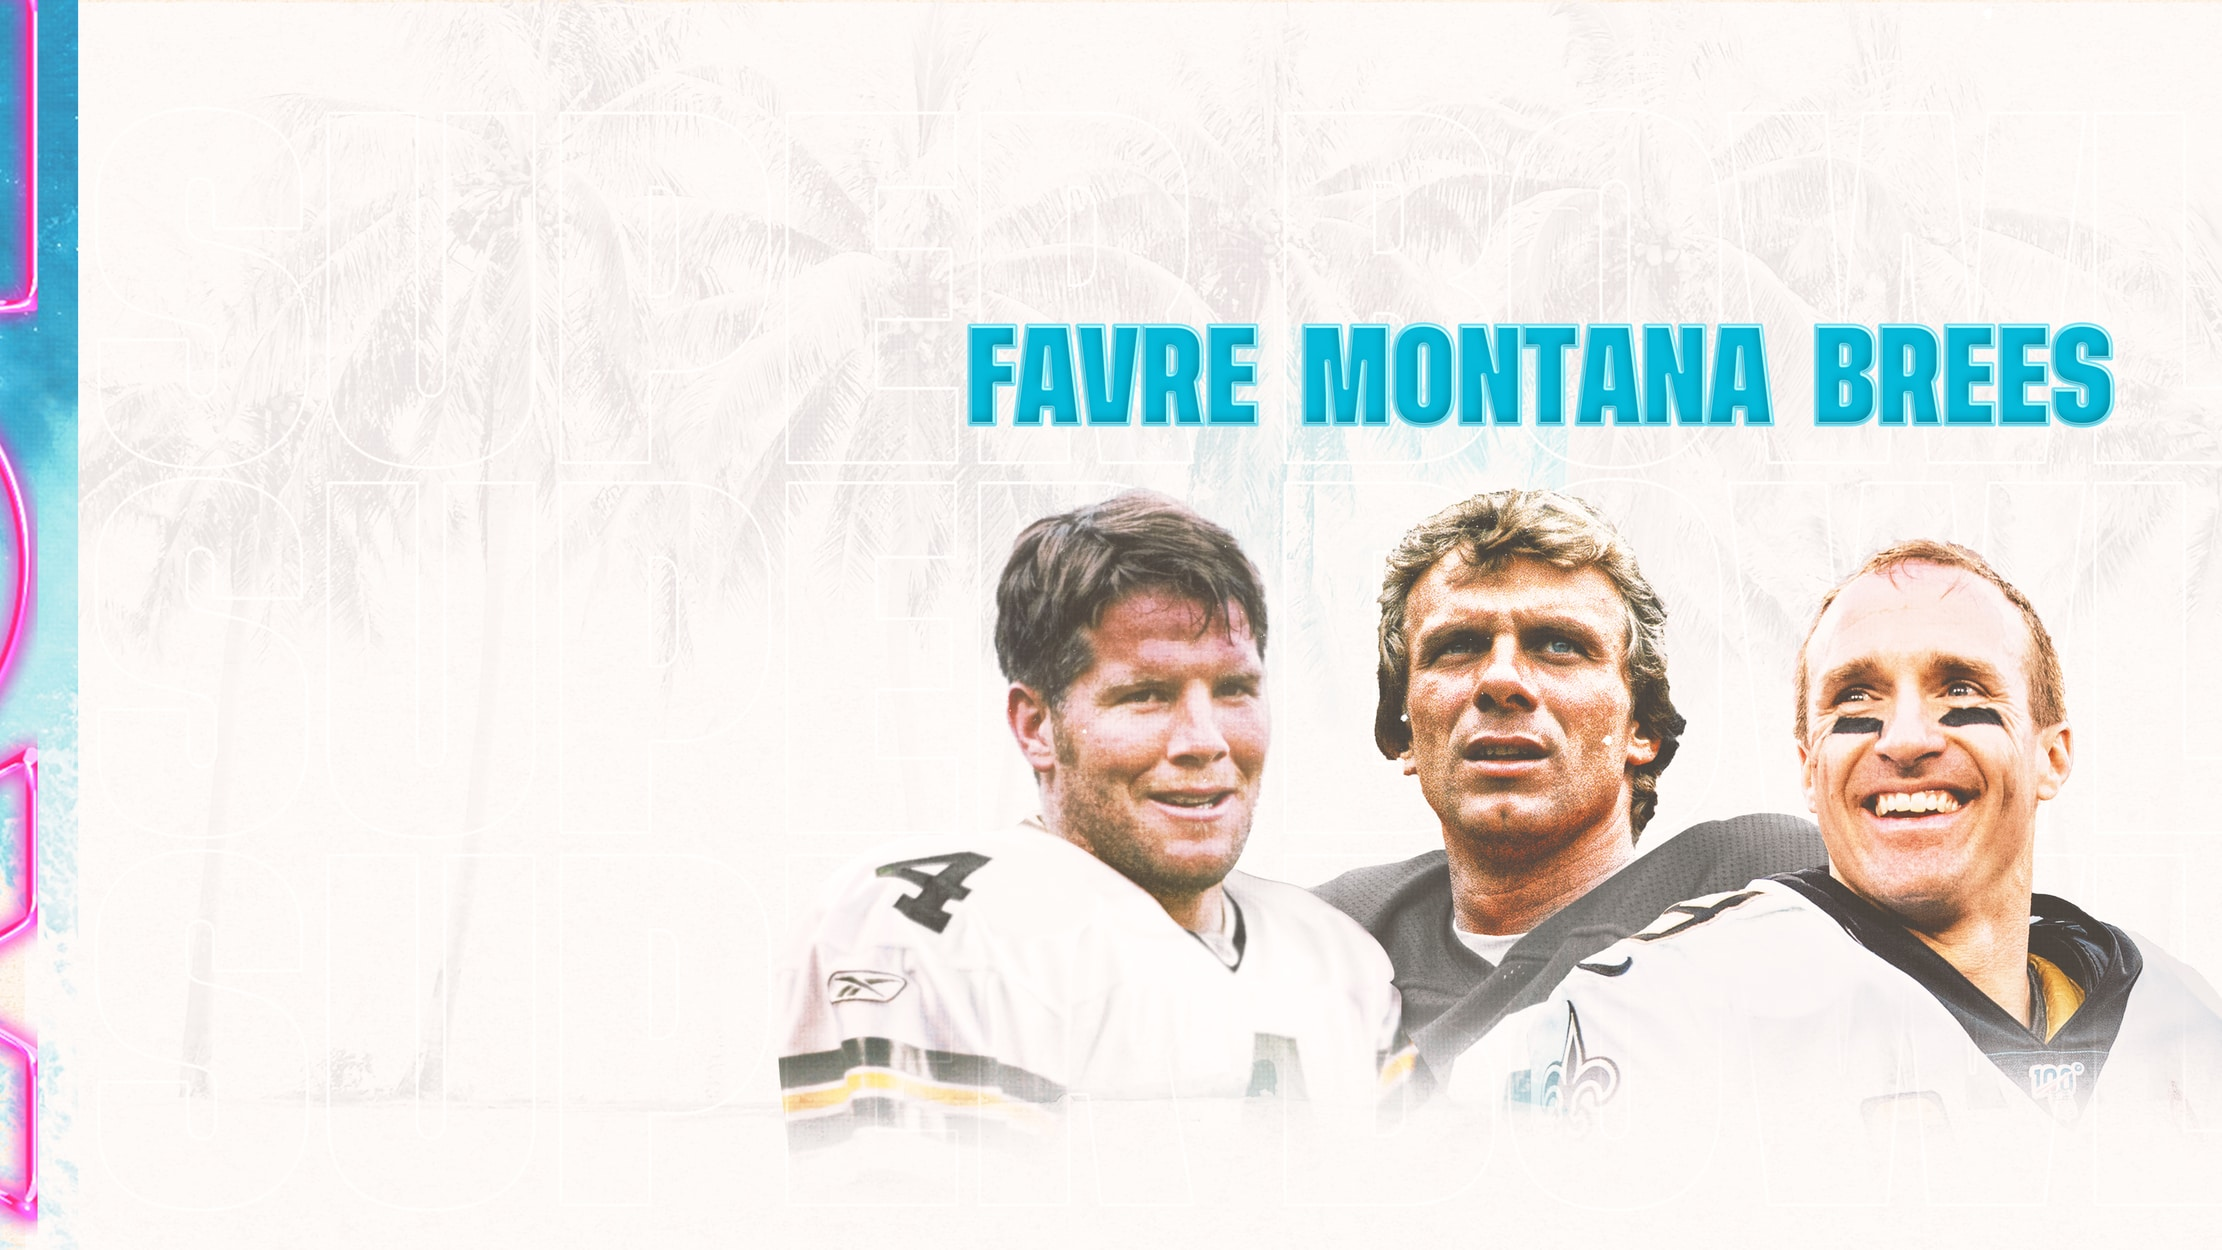 Super Bowl Watch Party with Montana, Favre, & Brees